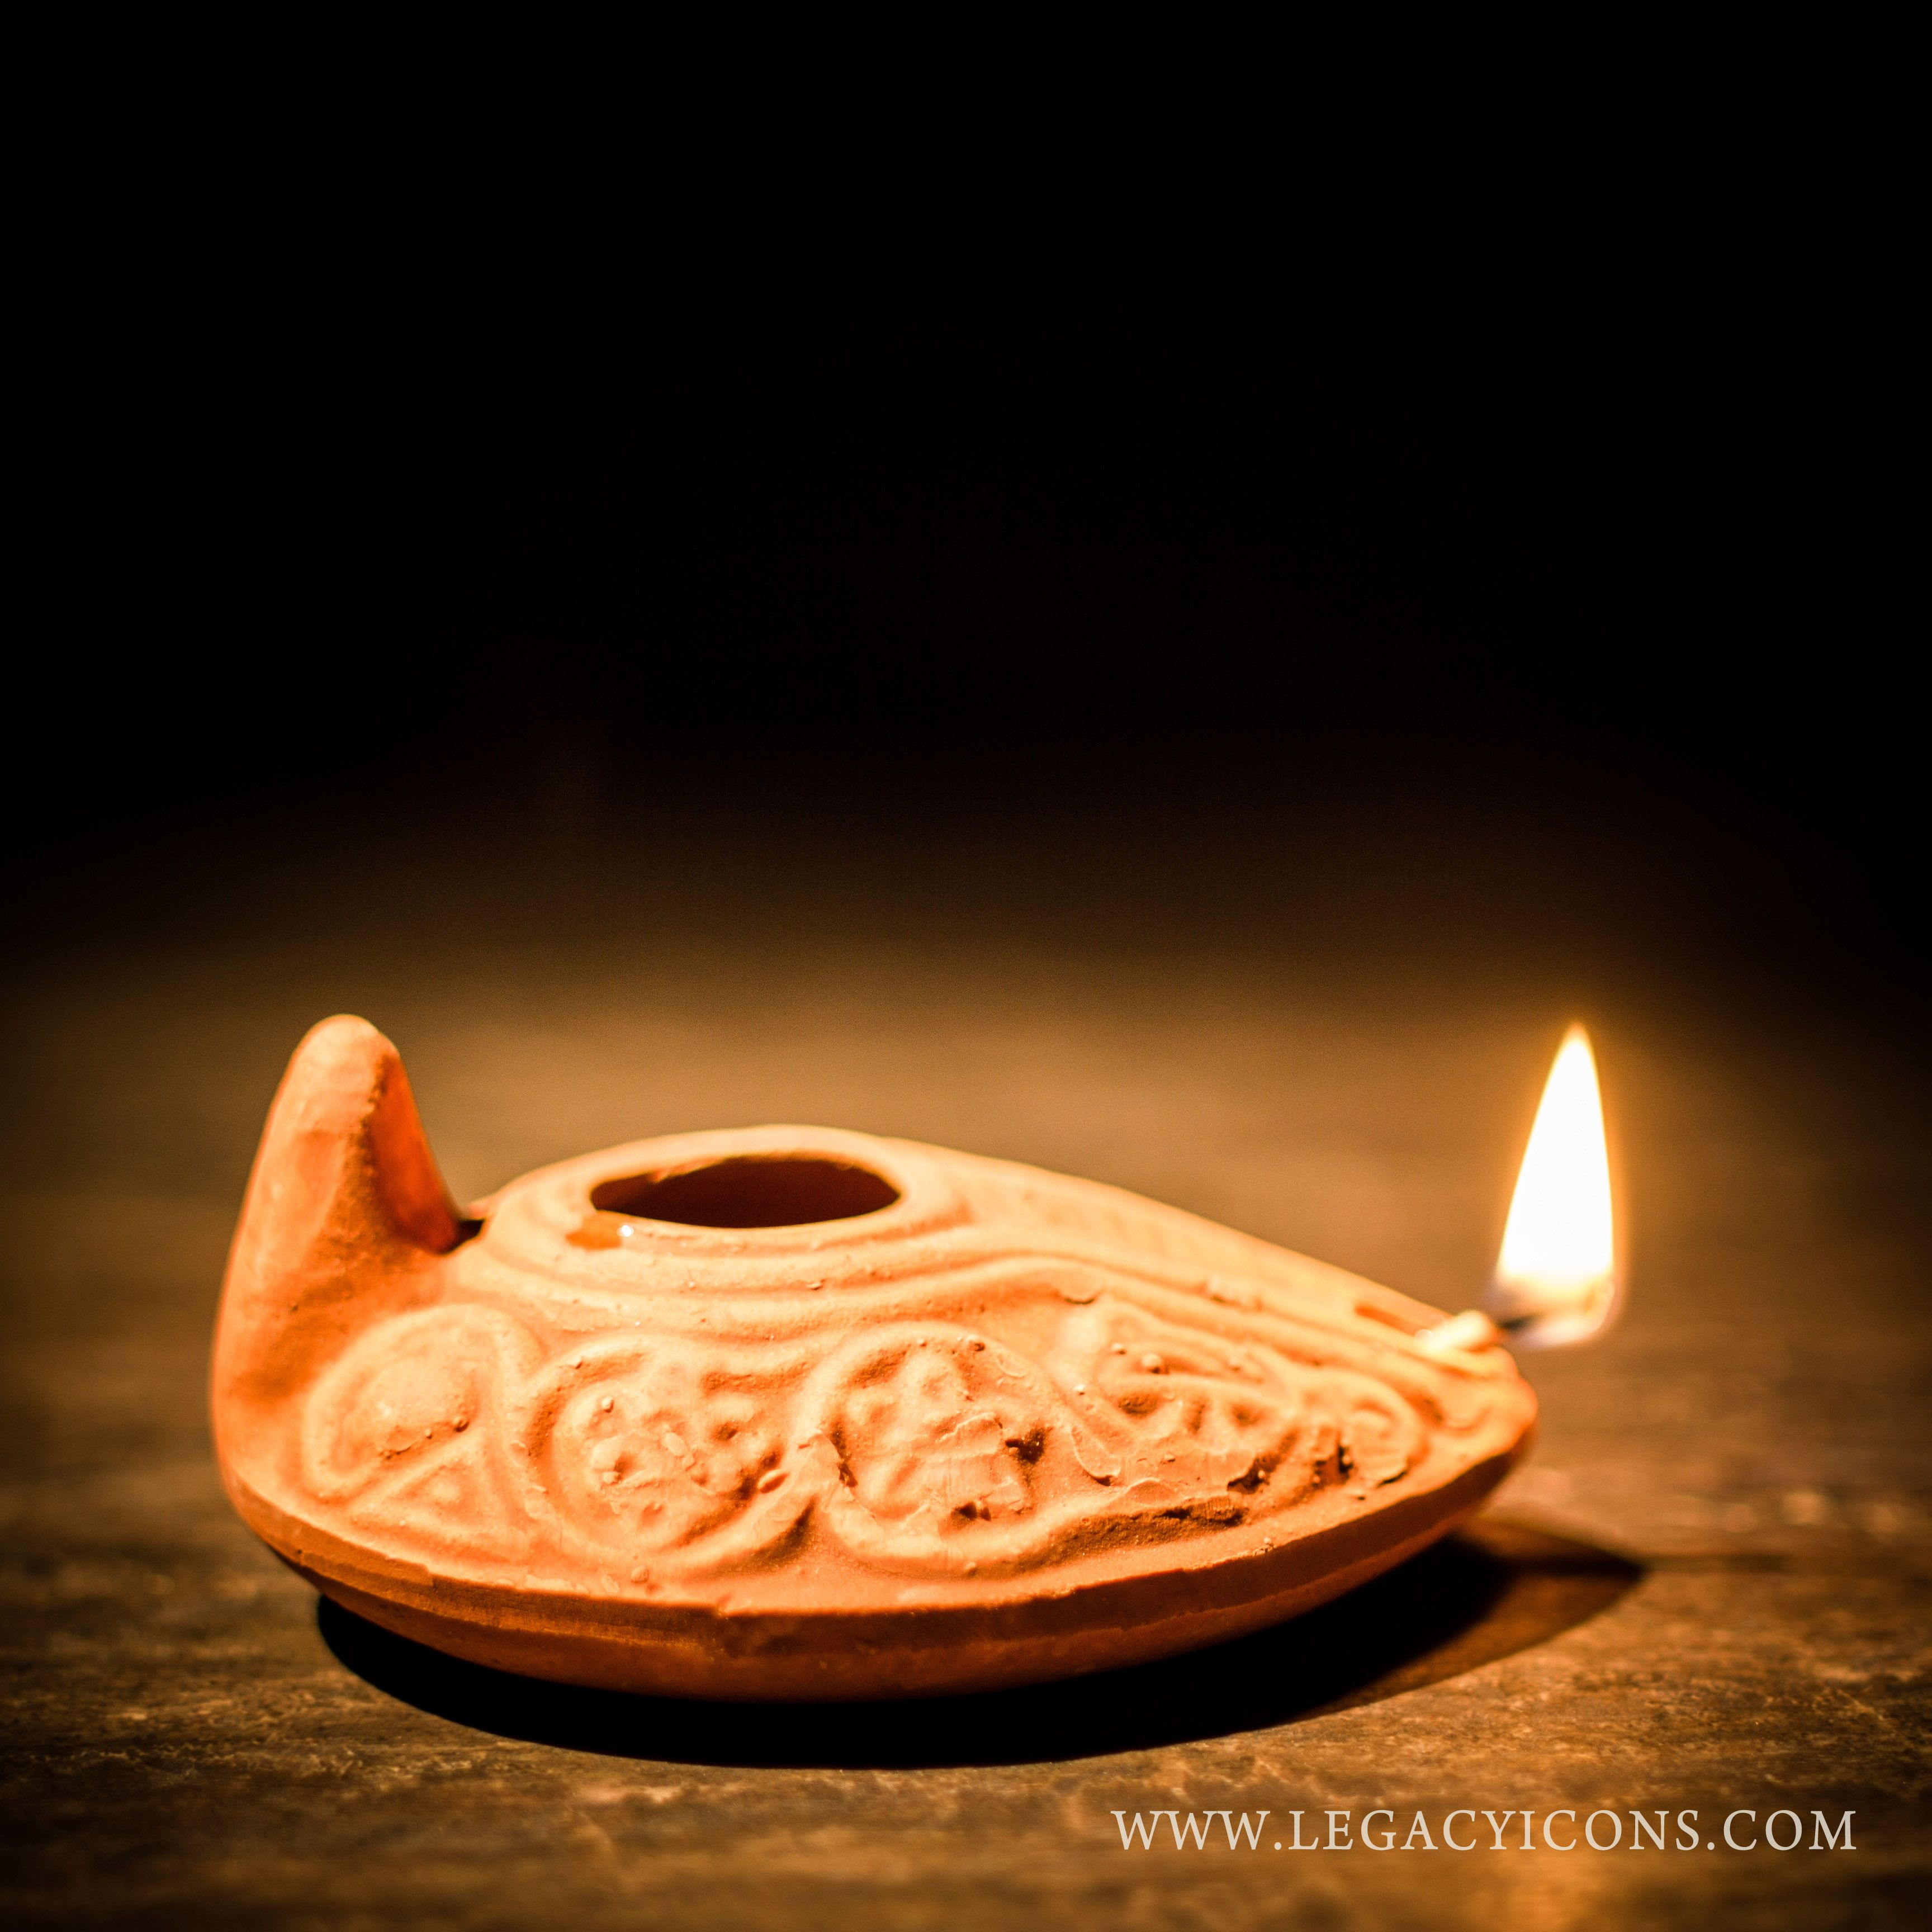 Reproduction Biblical Clay Oil Lamp. This is an authentic